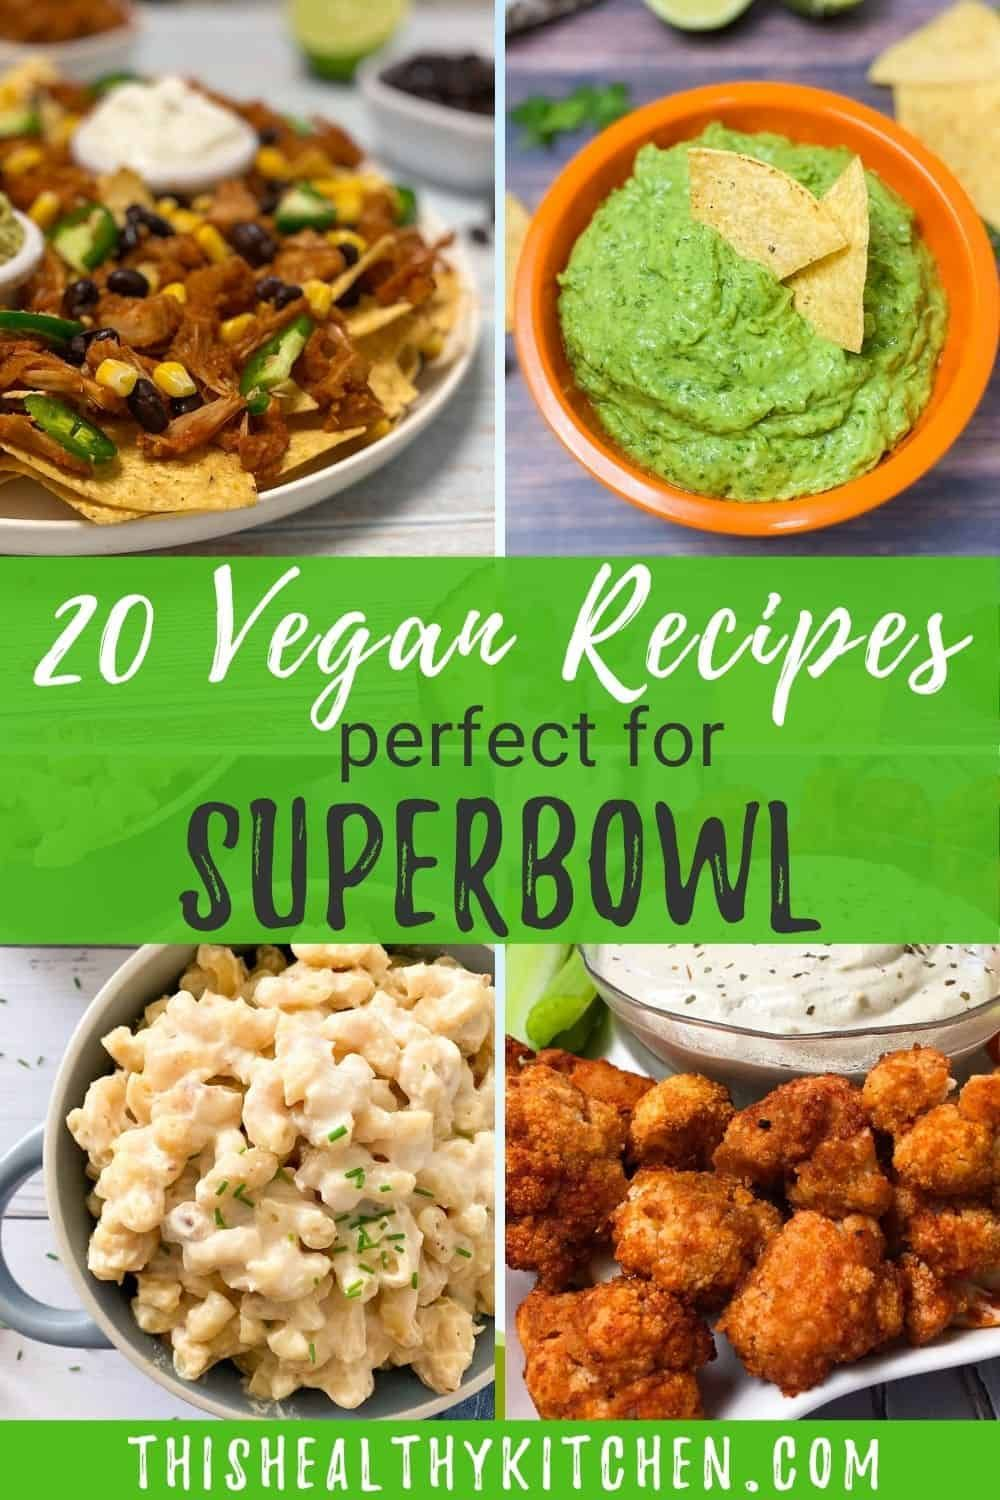 Check out 20 of the best vegan superbowl recipes that make